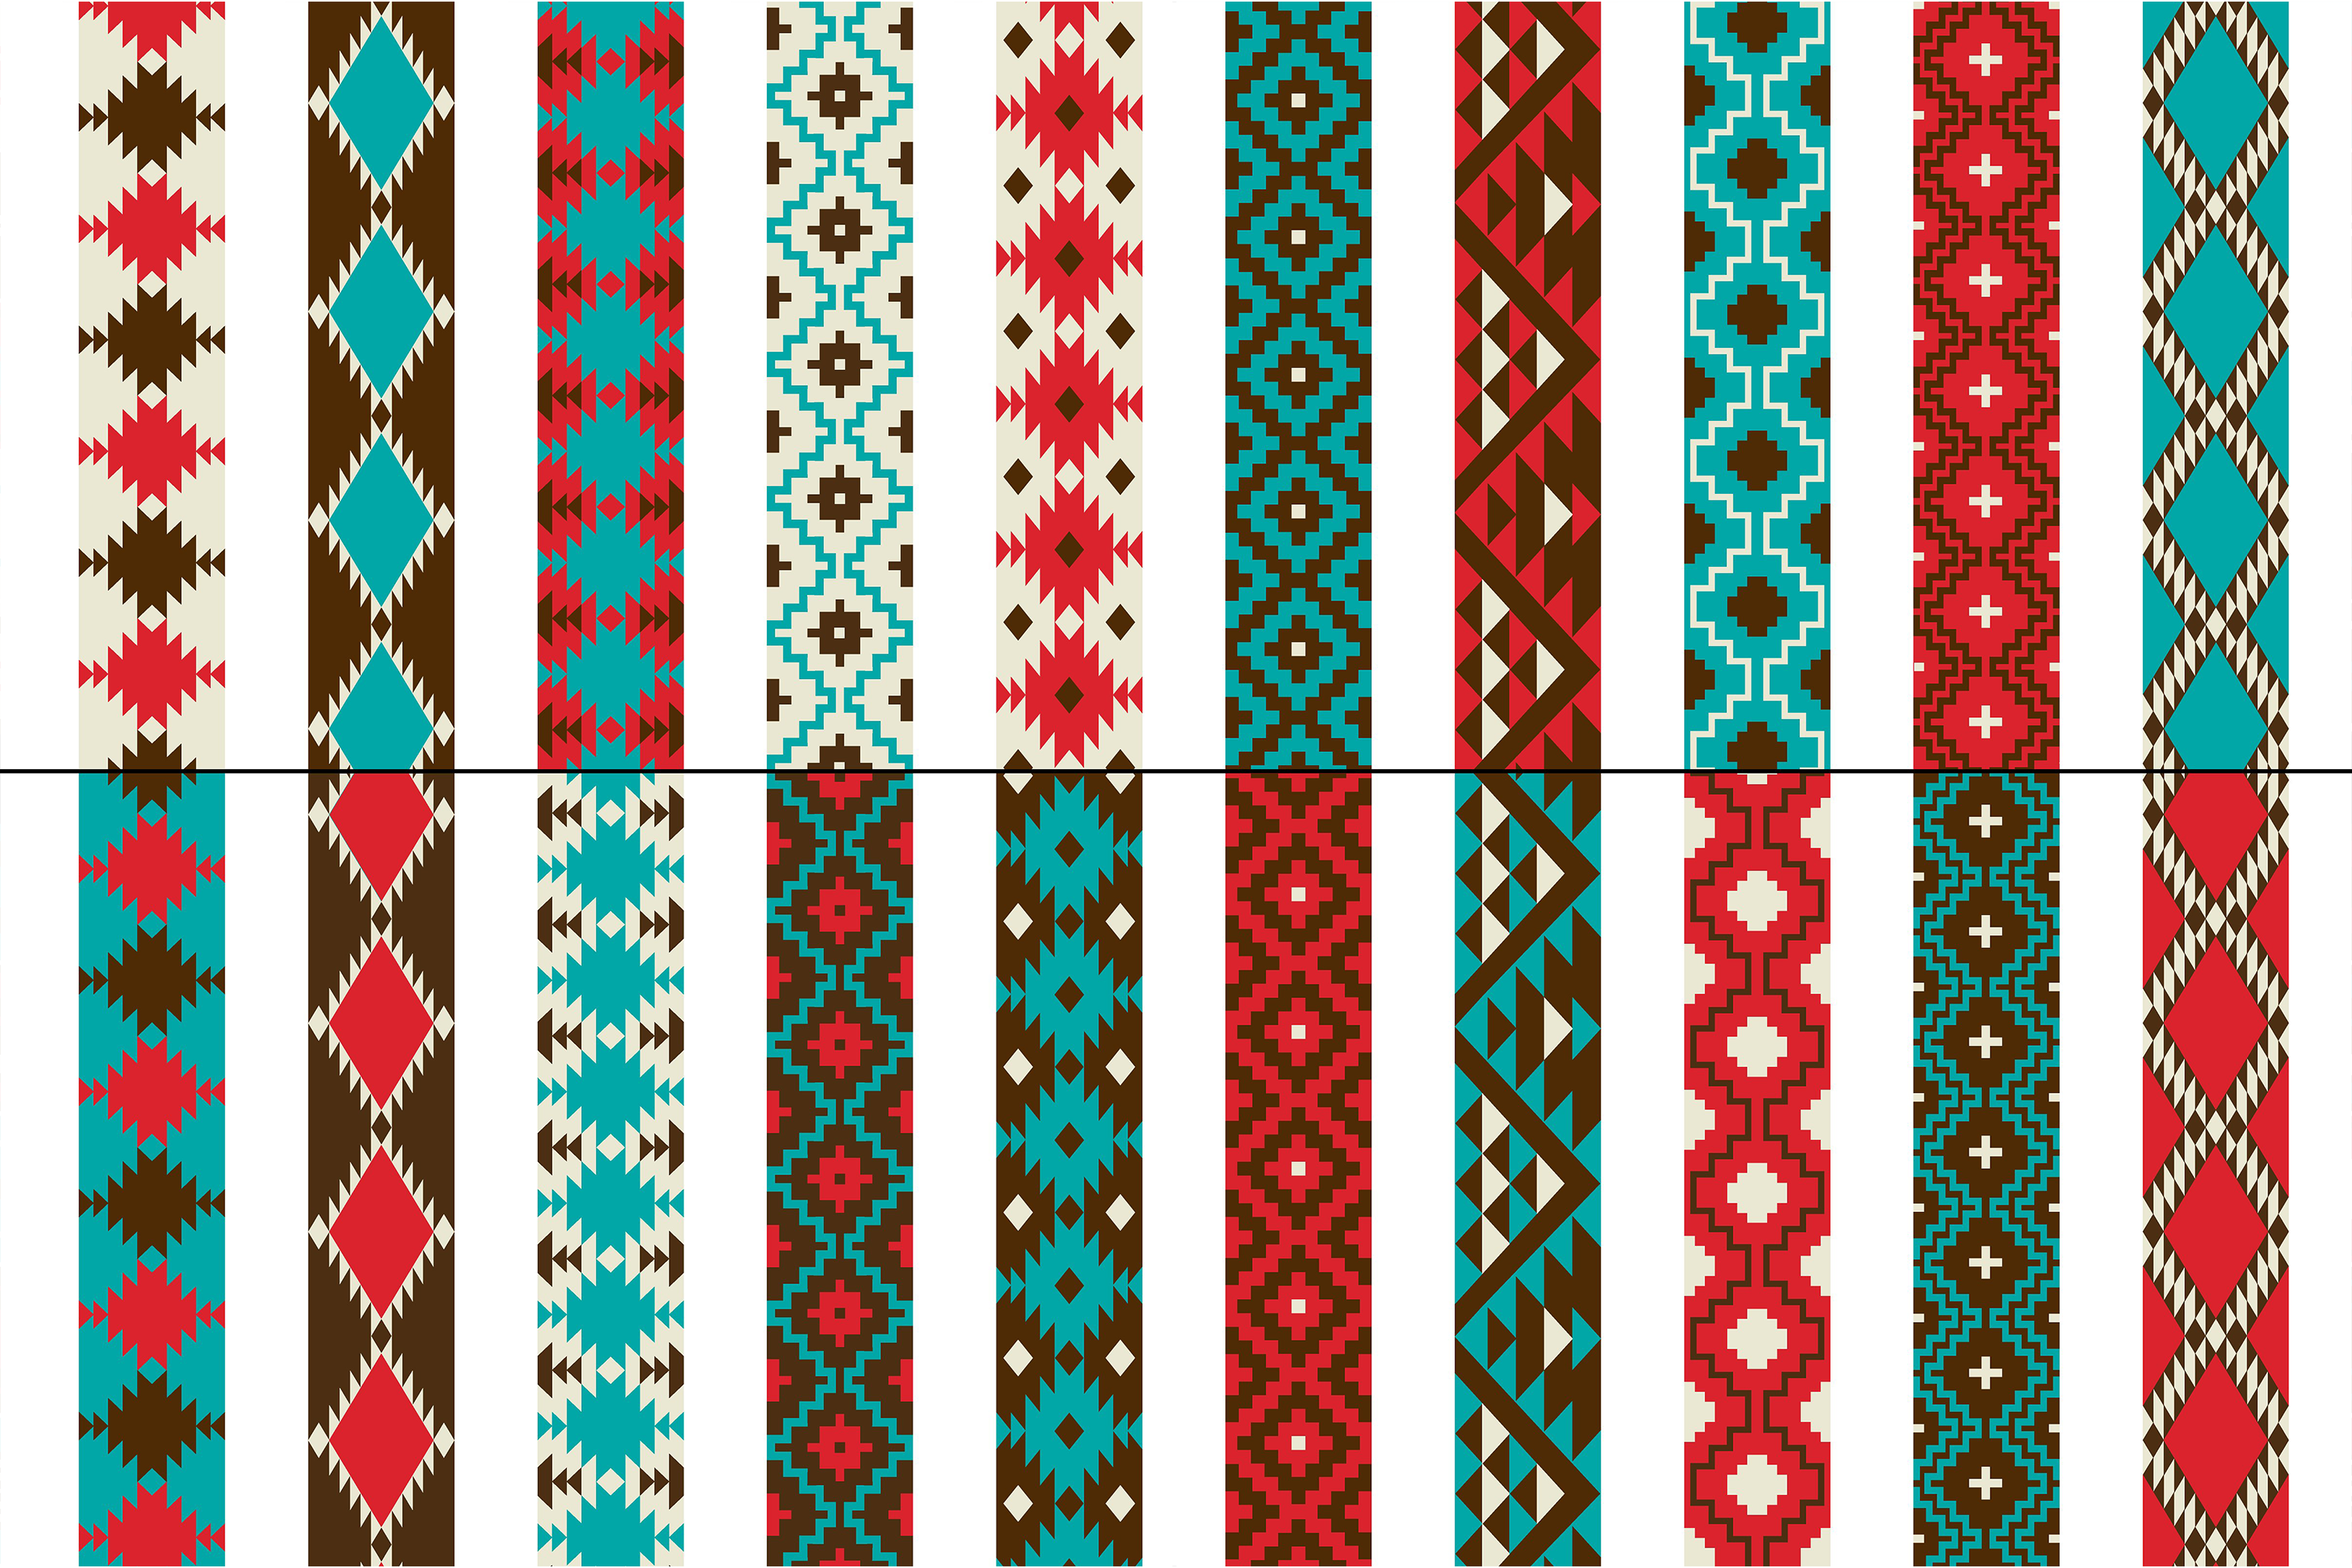 Native American Border Patterns example image 2